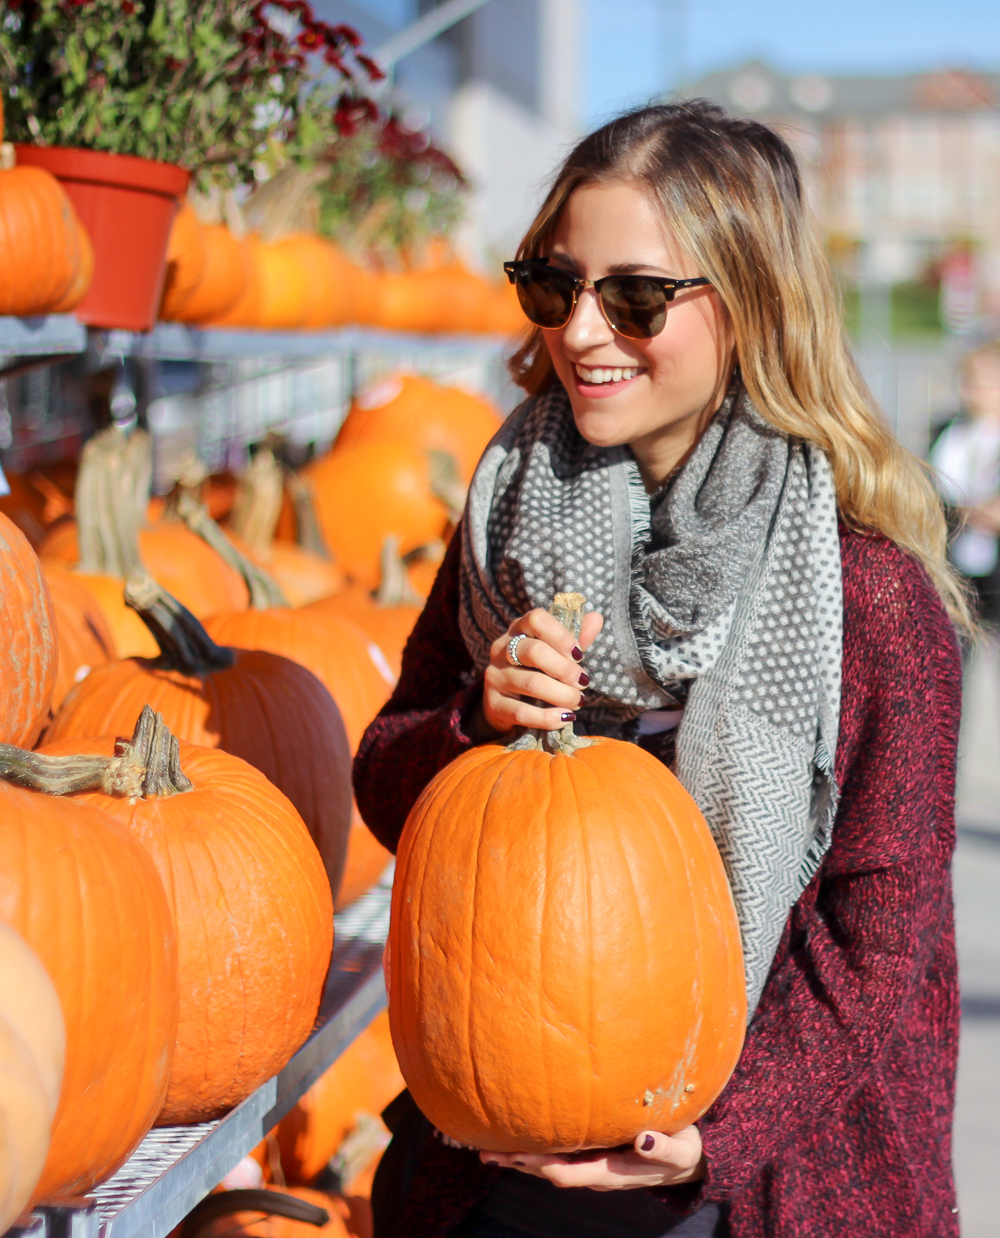 Toronto fashion and lifestyle blogger, Jackie Goldhar, from Something About That, shares her 10 favourite things about fall